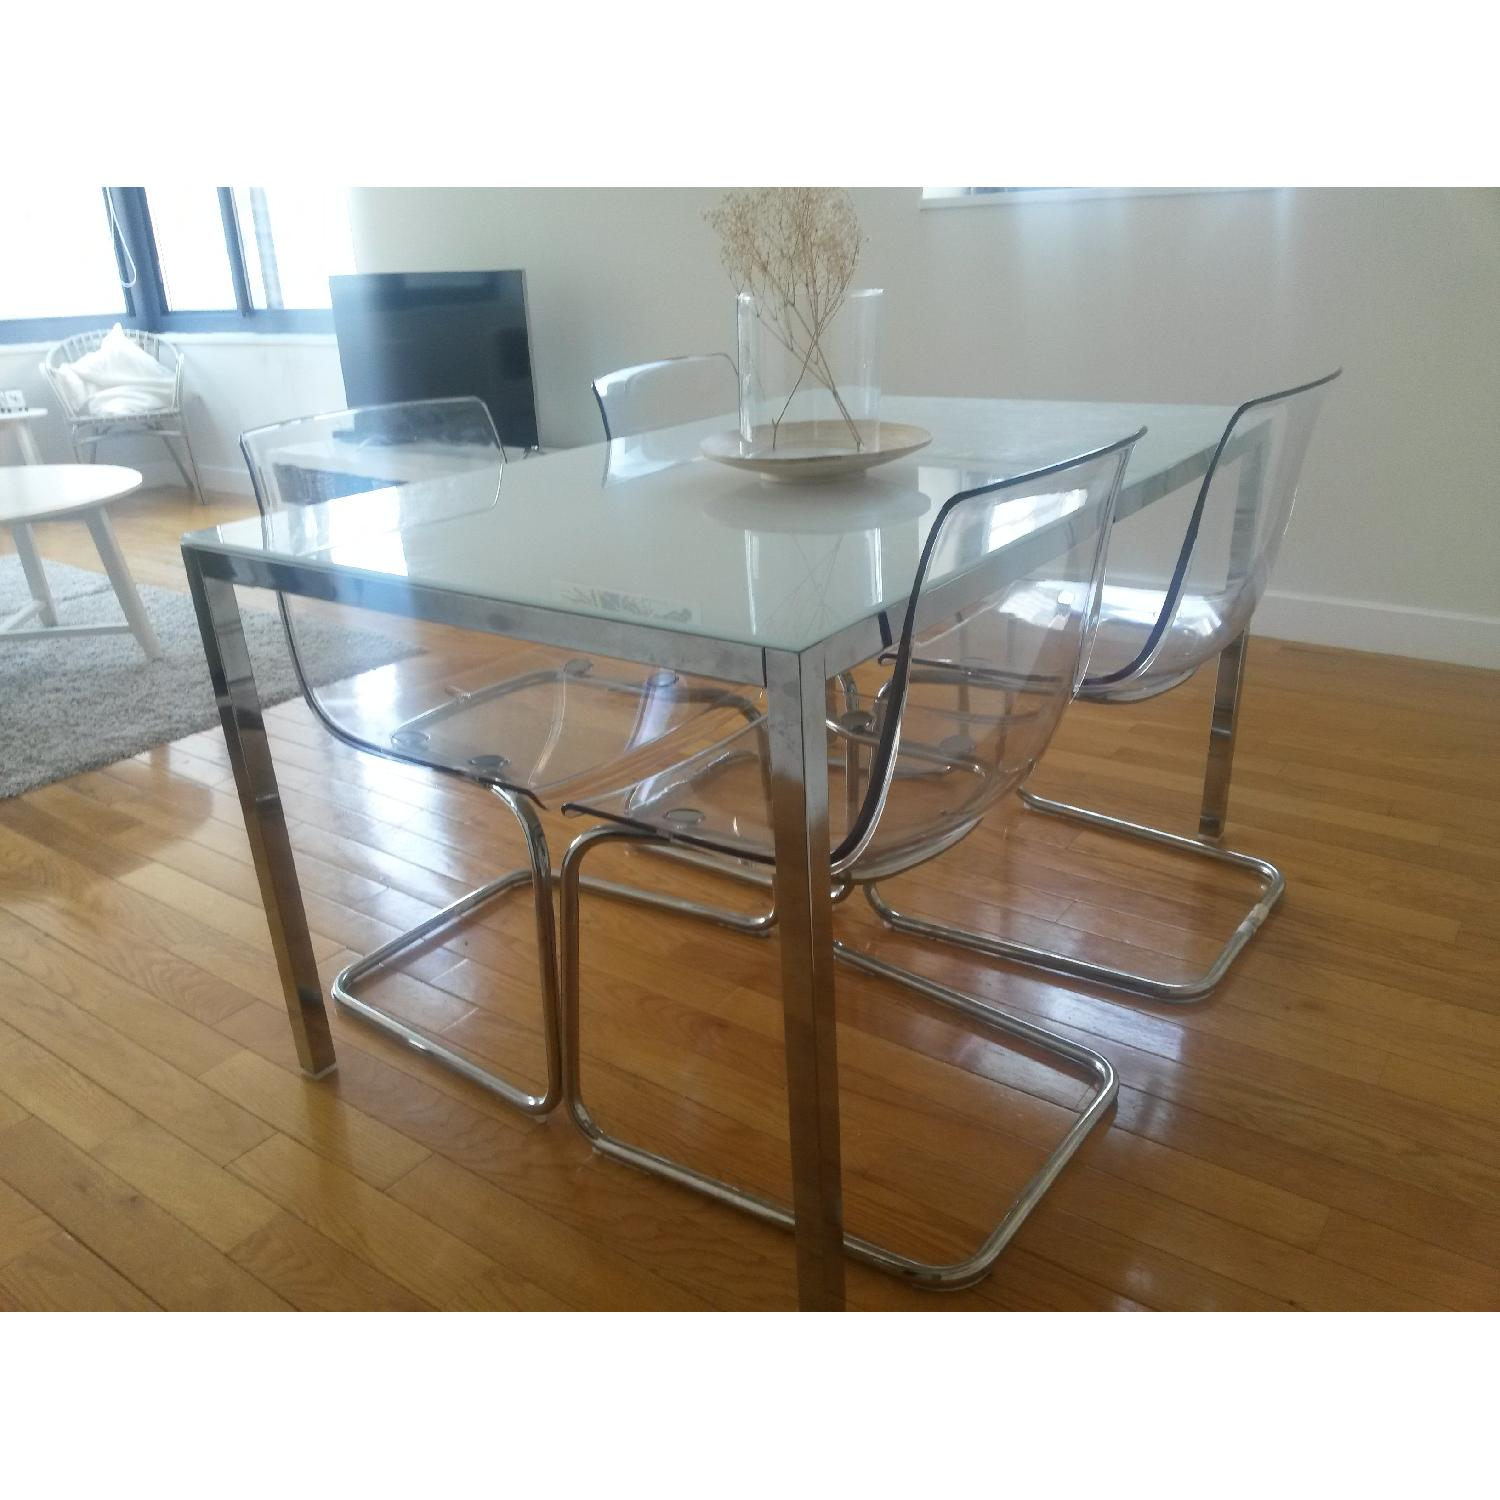 Ikea Torsby/Tobias Table w/ 4 Chairs - image-2